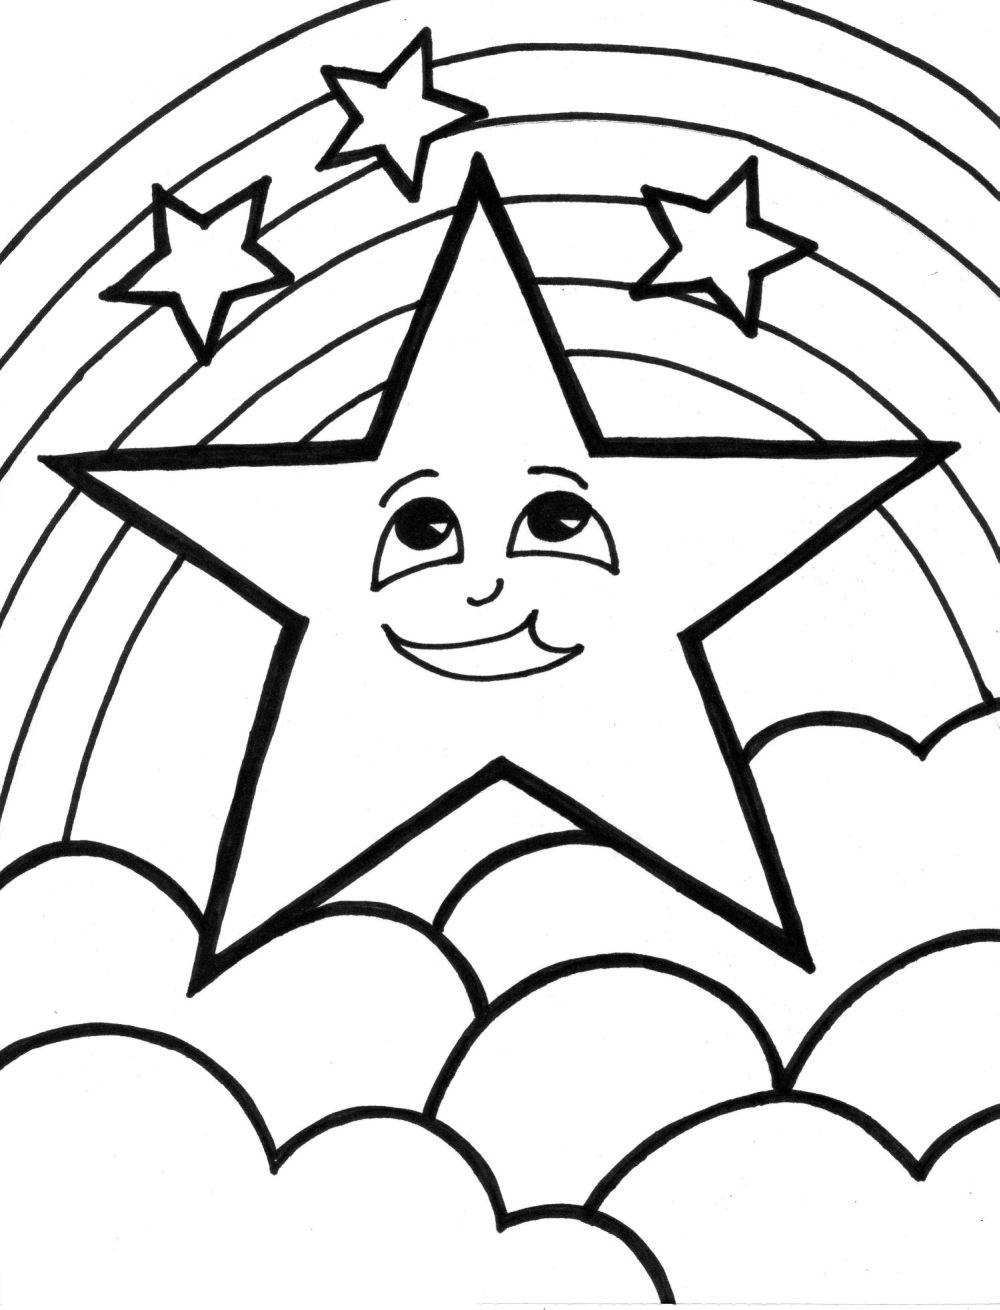 5 Images of Free Printable Star Coloring Pages